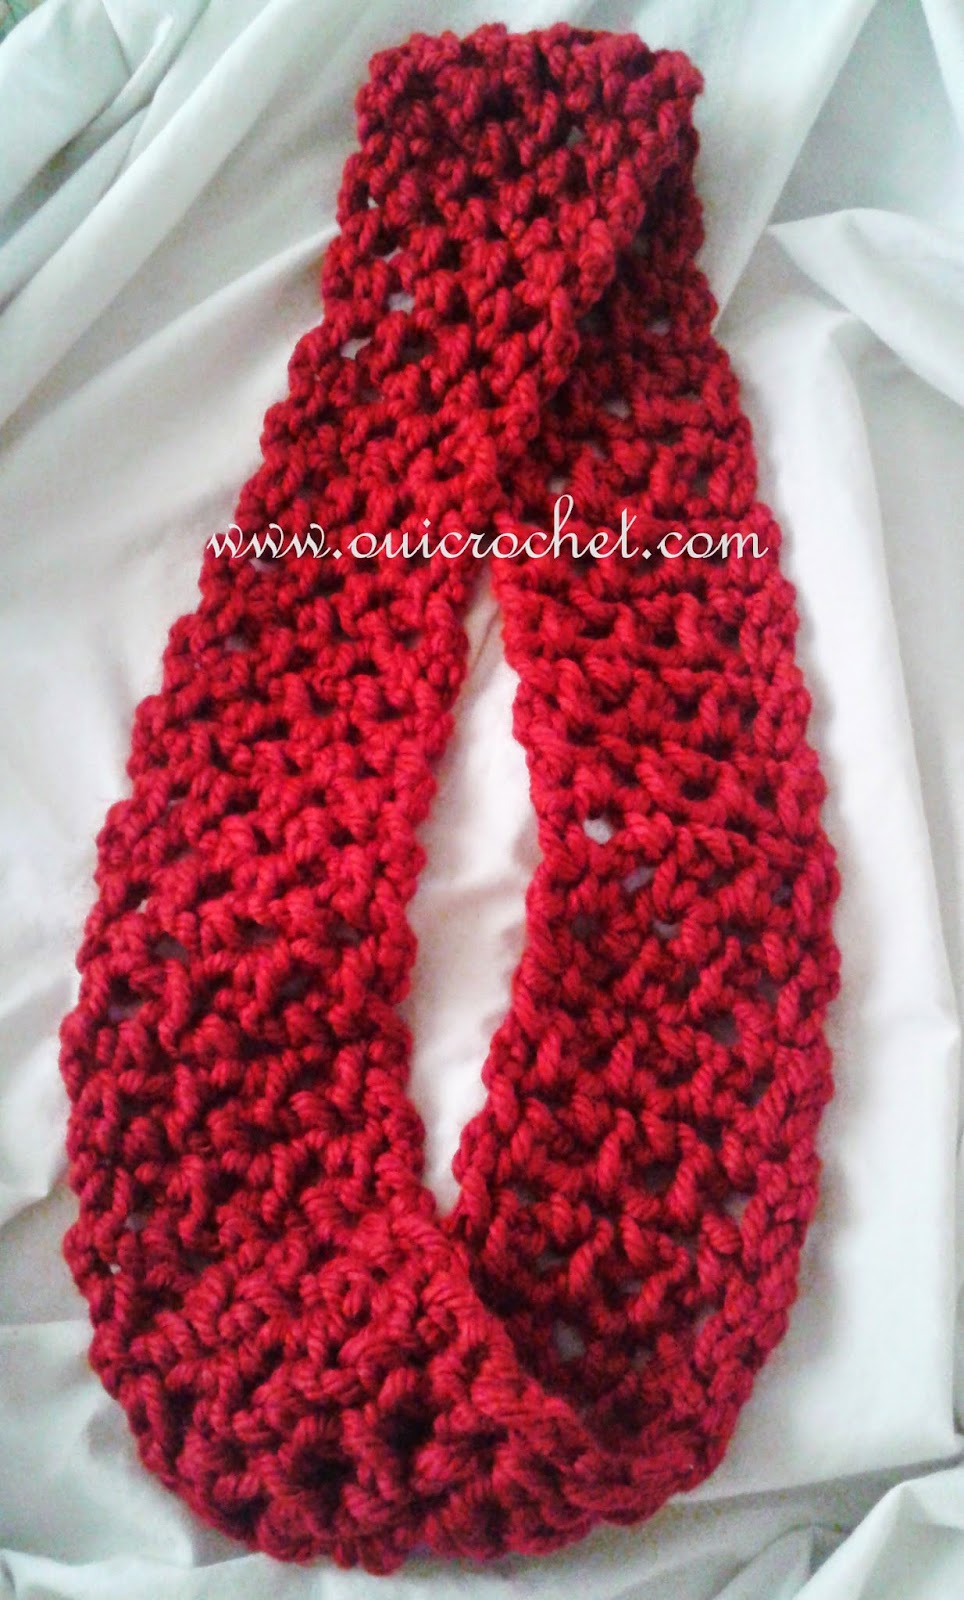 Crochet Shawl Patterns With Bulky Yarn : Oui Crochet: Quick Infinity Scarf {Free Crochet Pattern}